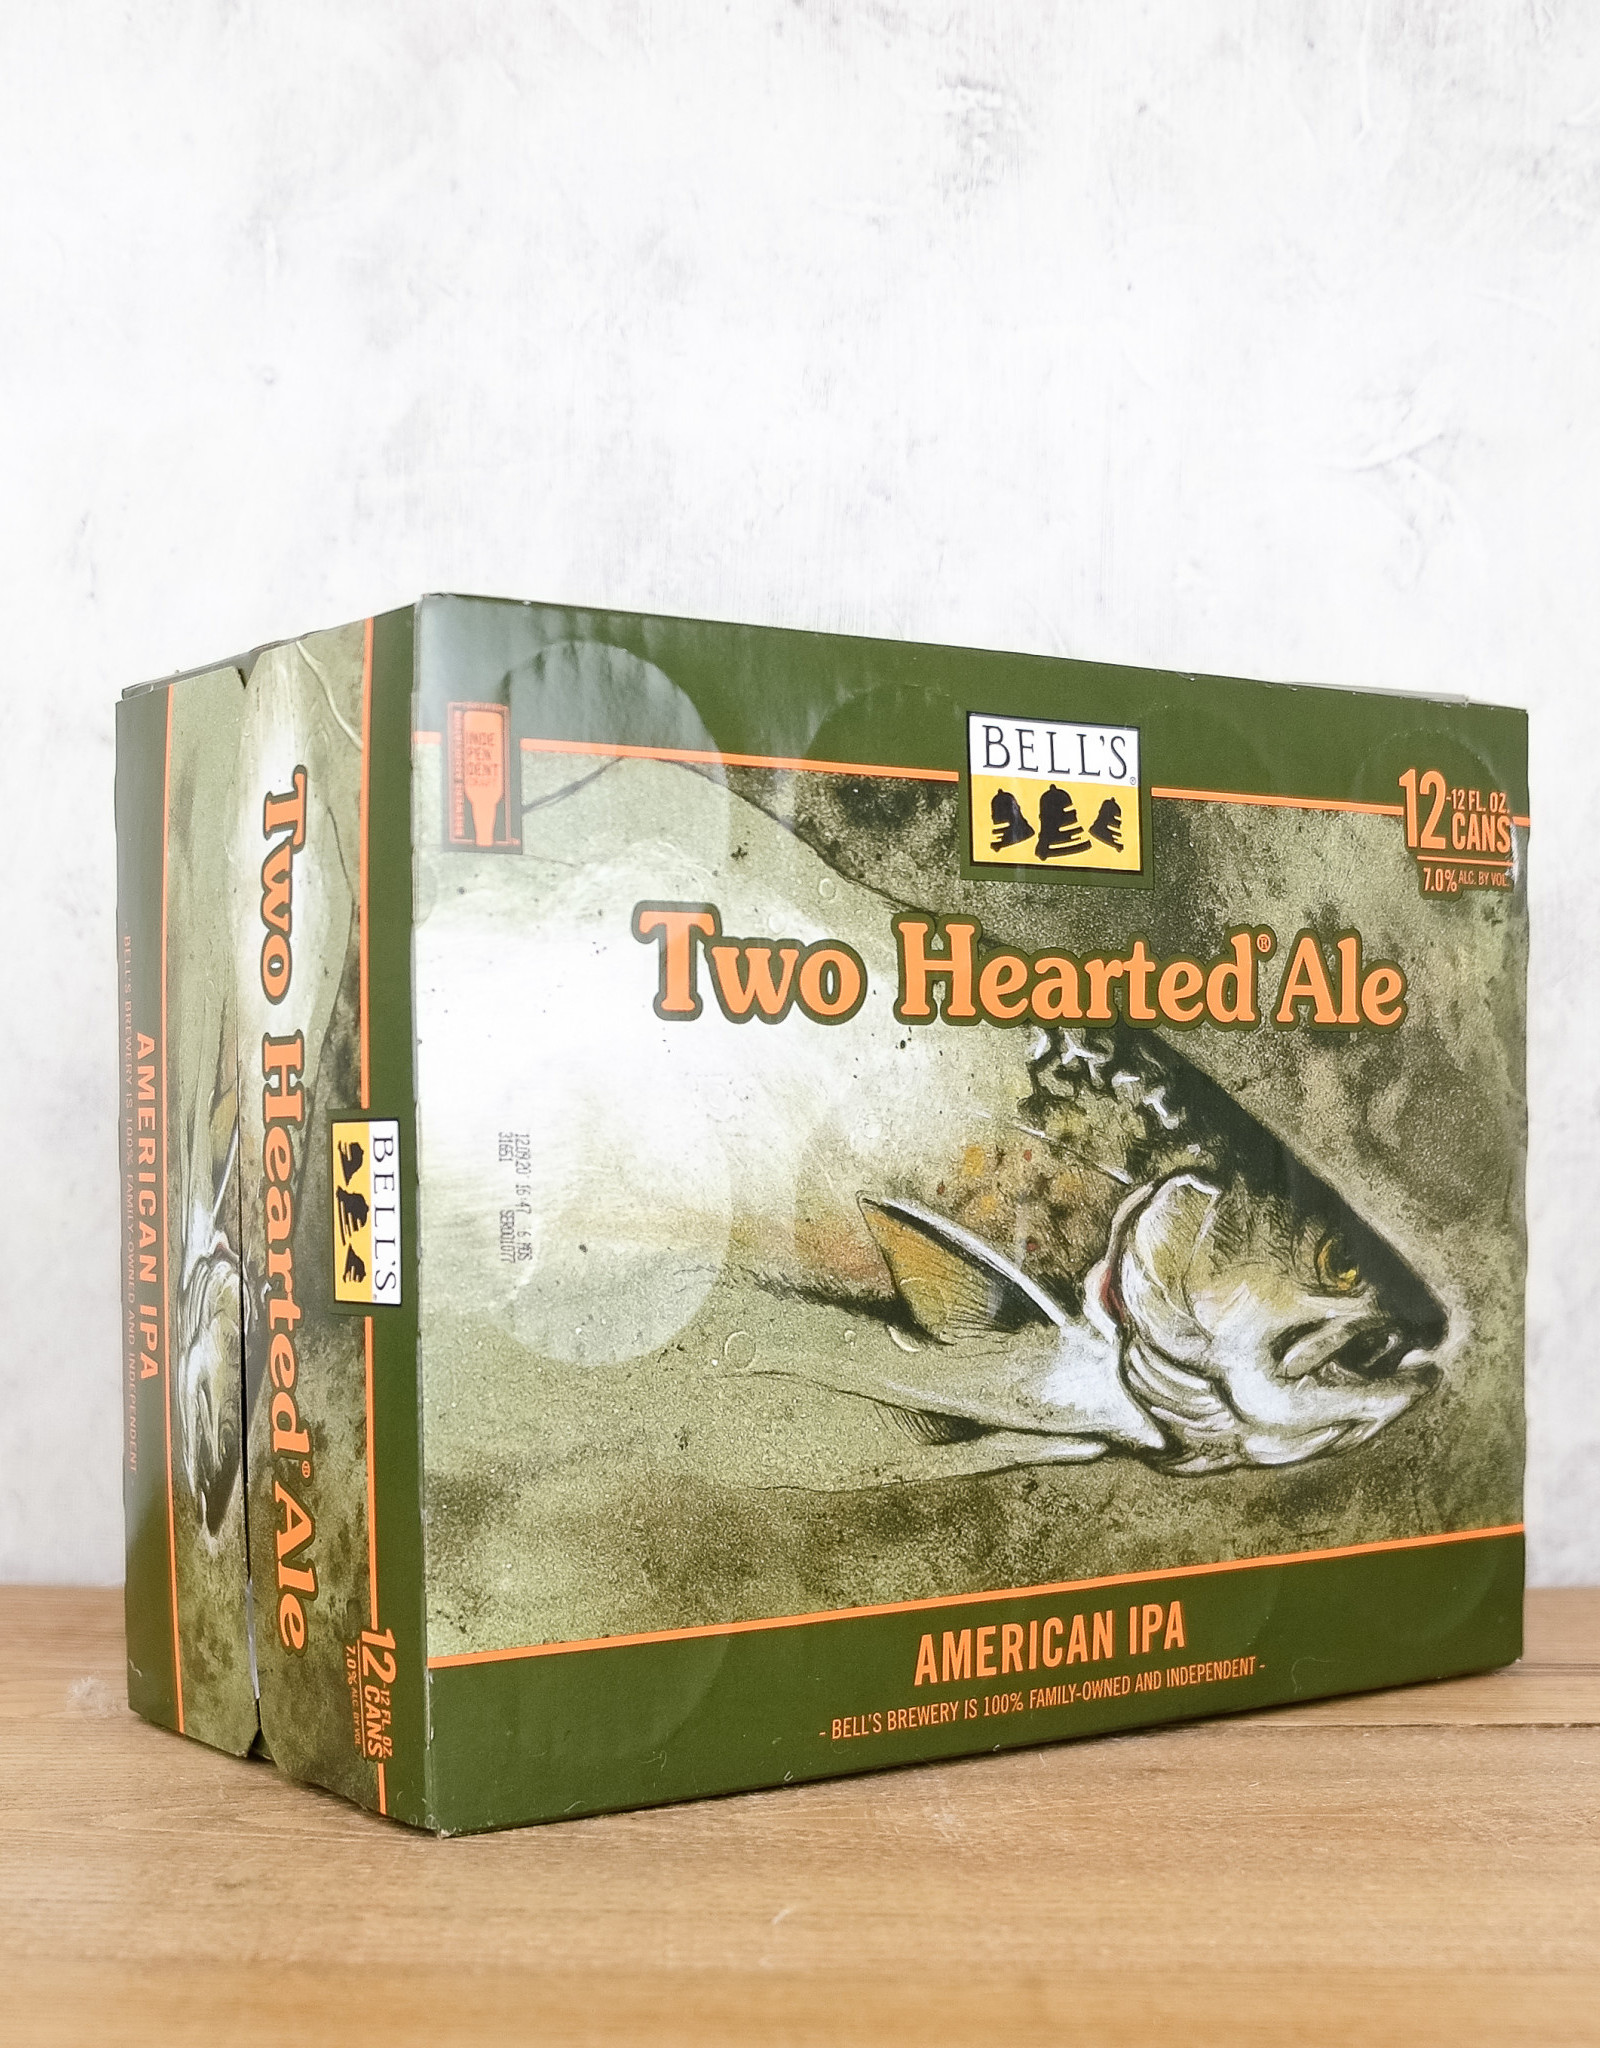 Bell's Two Hearted 12pk